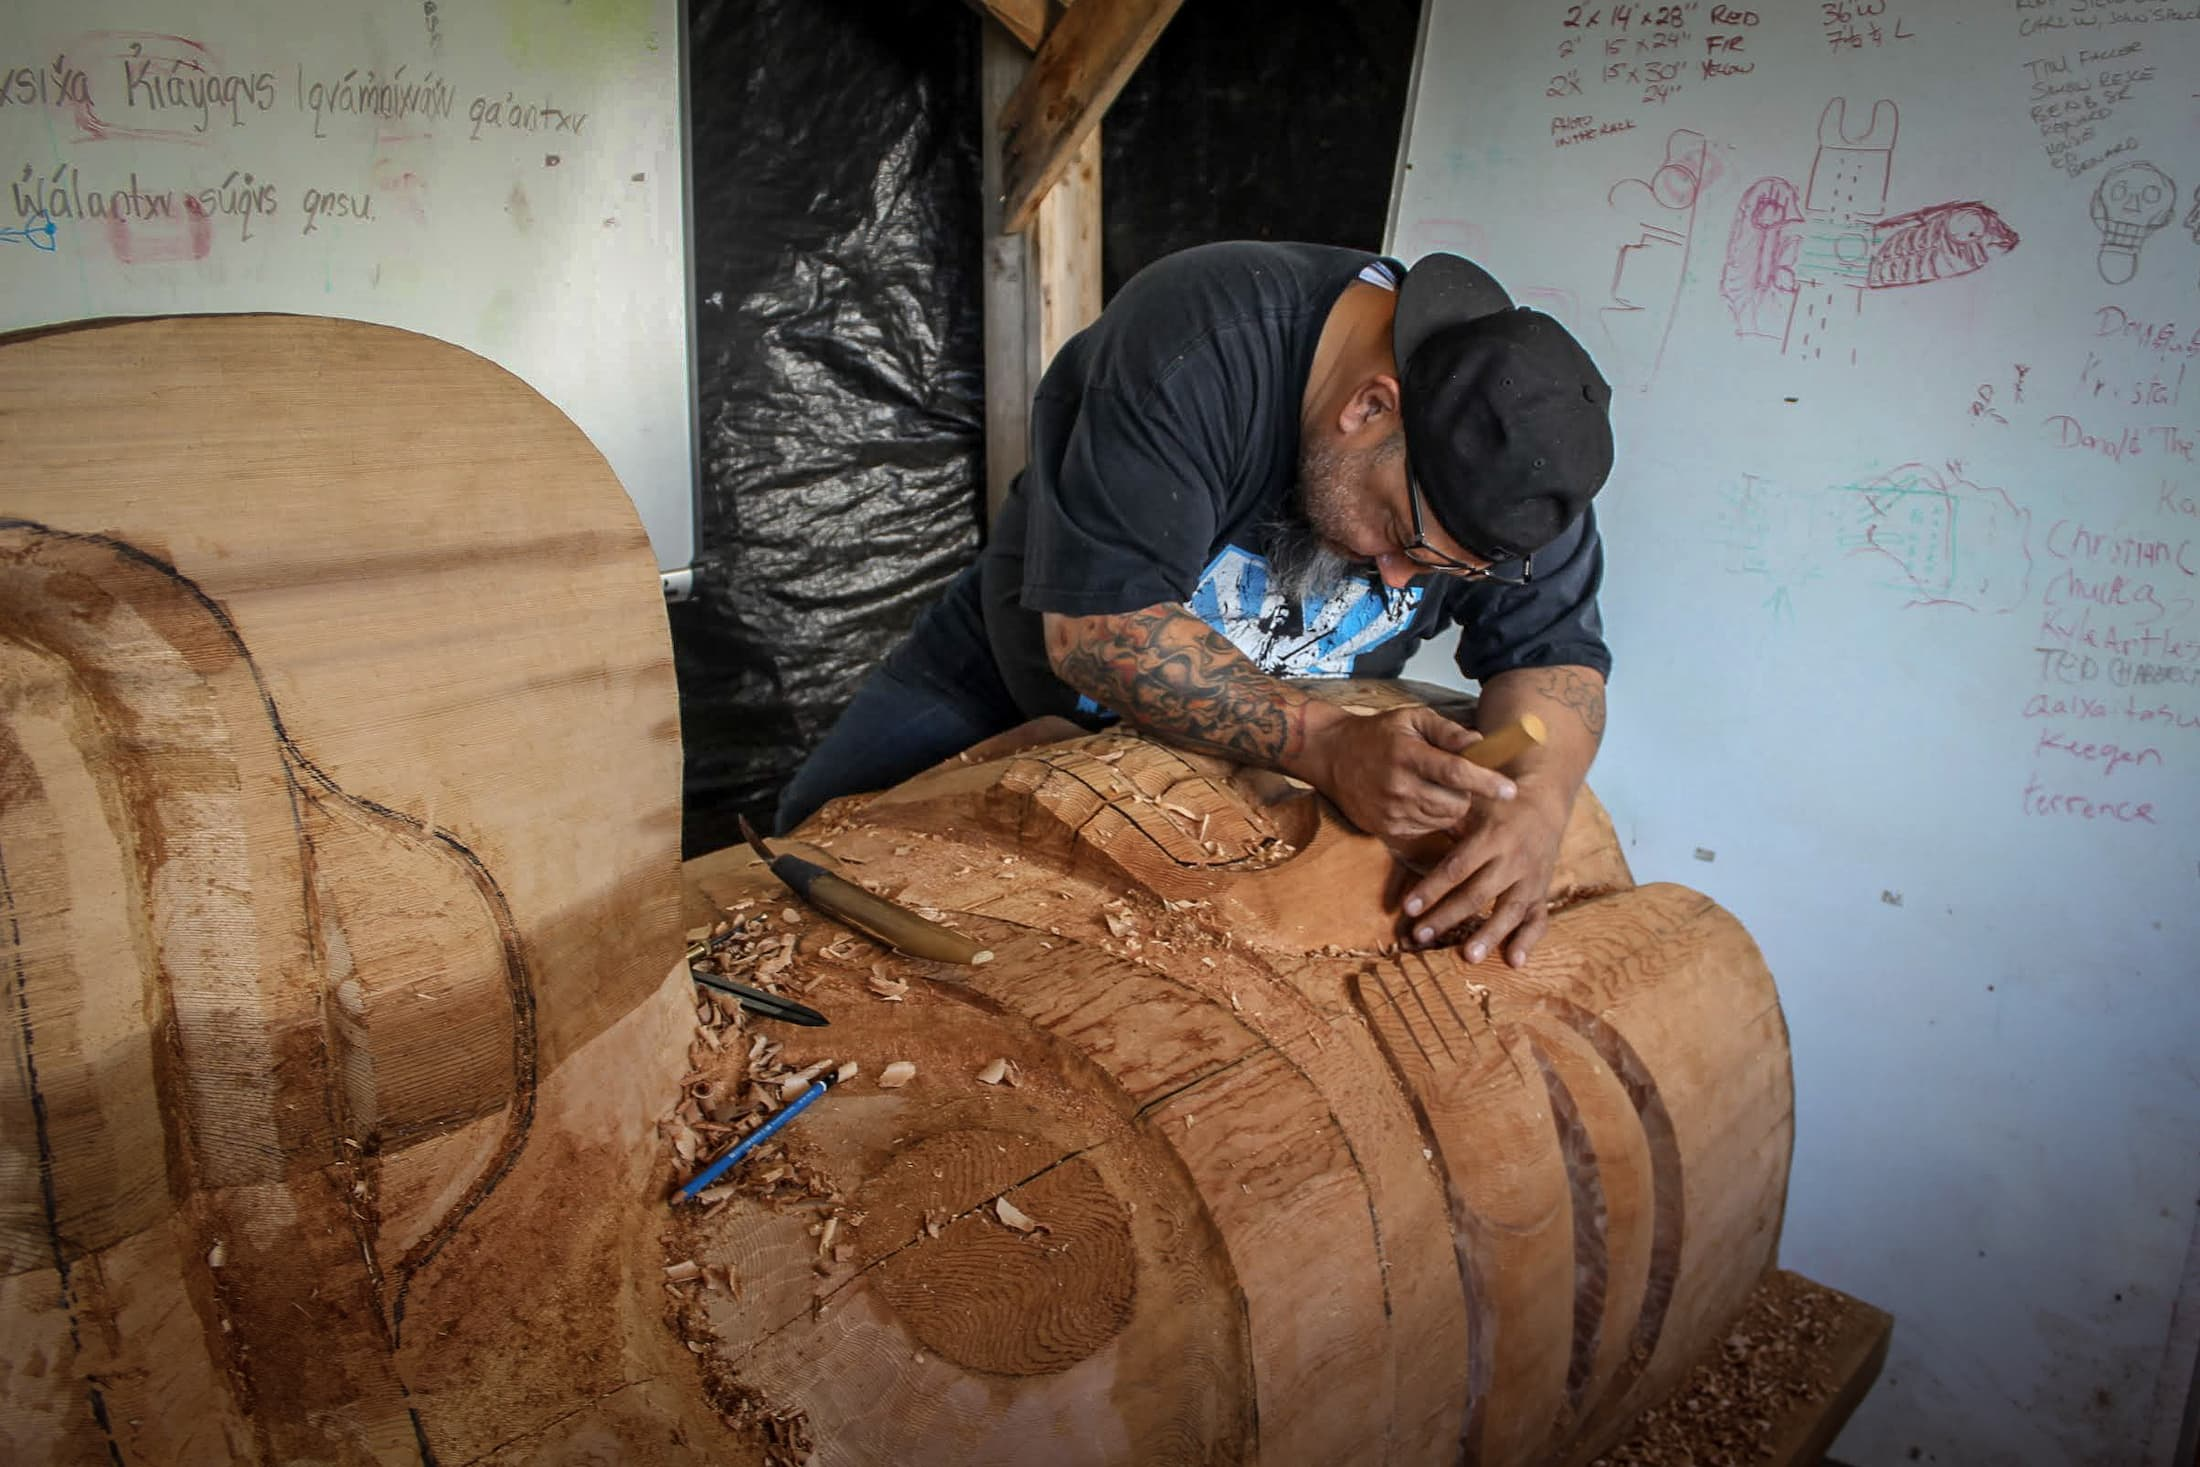 Gerry Sheena working on a totem pole. Photo: Heiltsuk First Nation